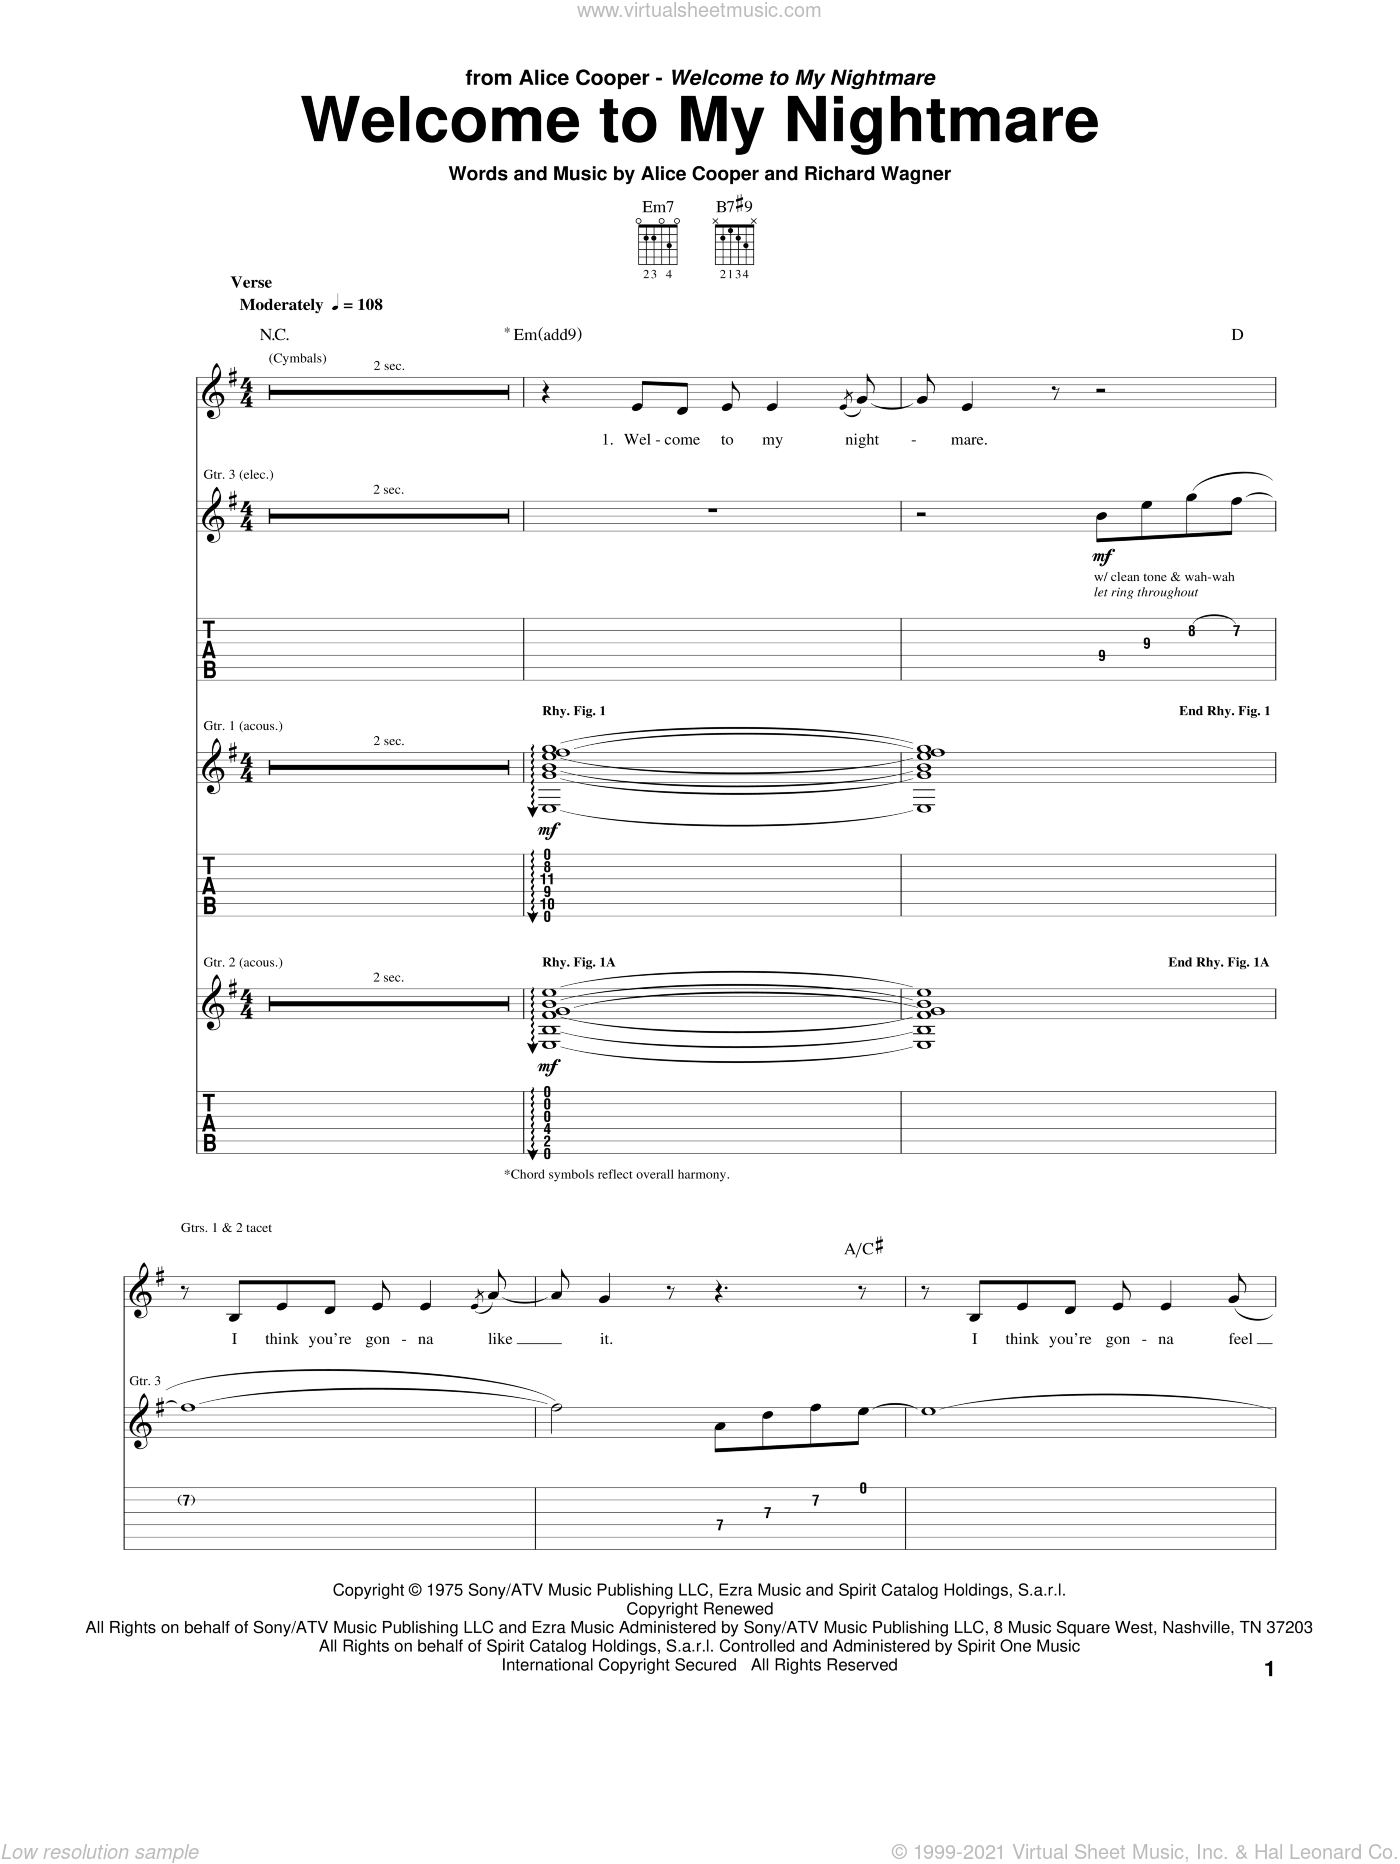 Welcome To My Nightmare sheet music for guitar (tablature) by Alice Cooper and Richard Wagner, intermediate skill level